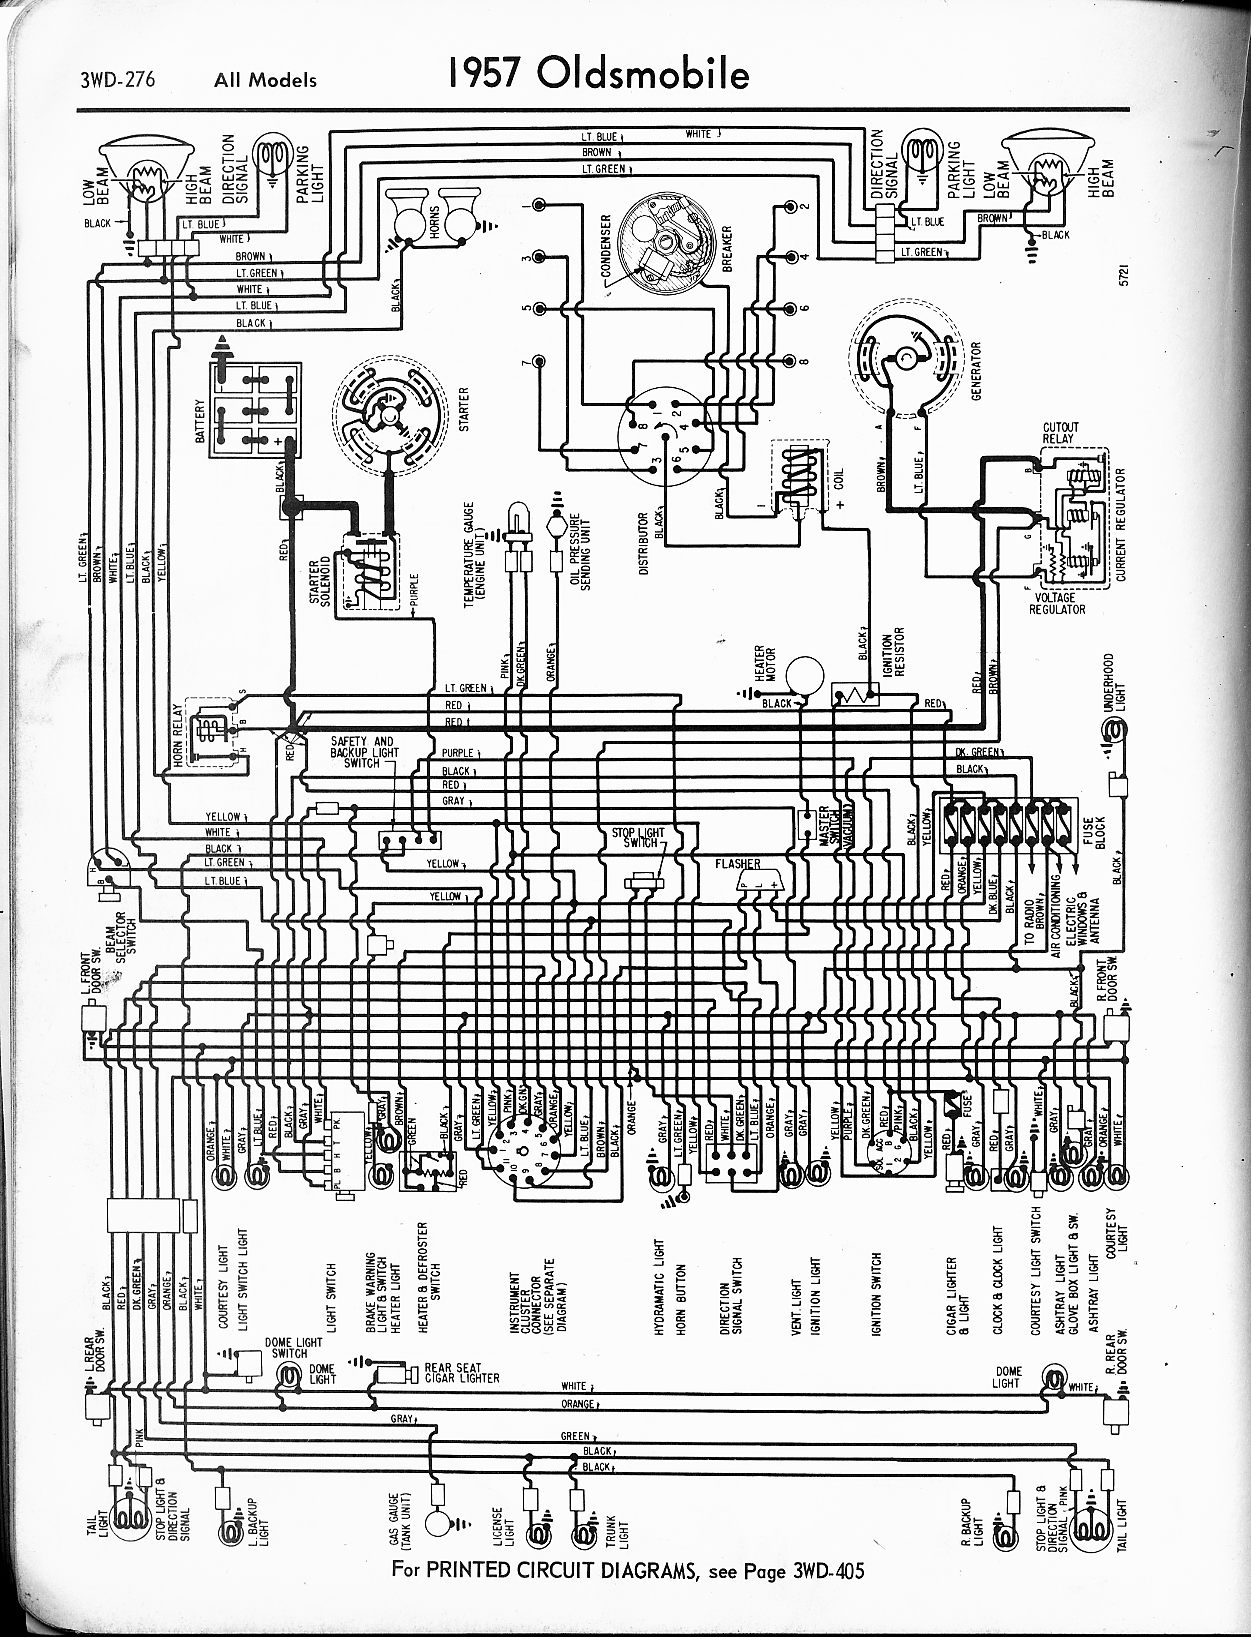 oldsmobile wiring diagrams the old car manual project rh oldcarmanualproject com 1998 Volkswagen GTI 1998 Golf GTI